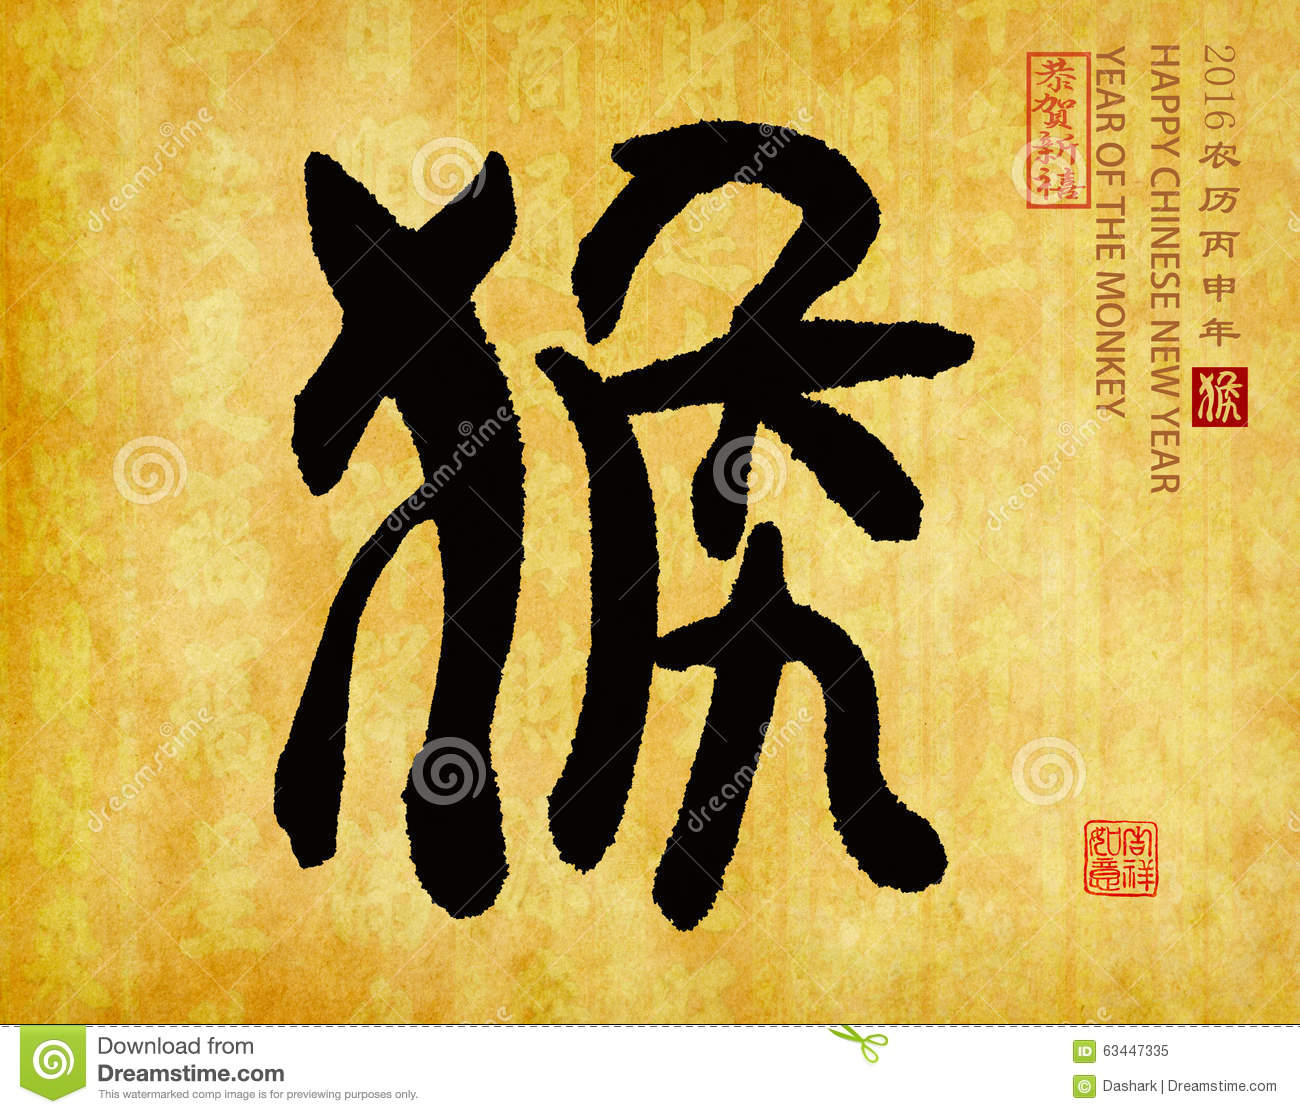 2016 is year of the monkeychinese calligraphy hou translation royalty free stock